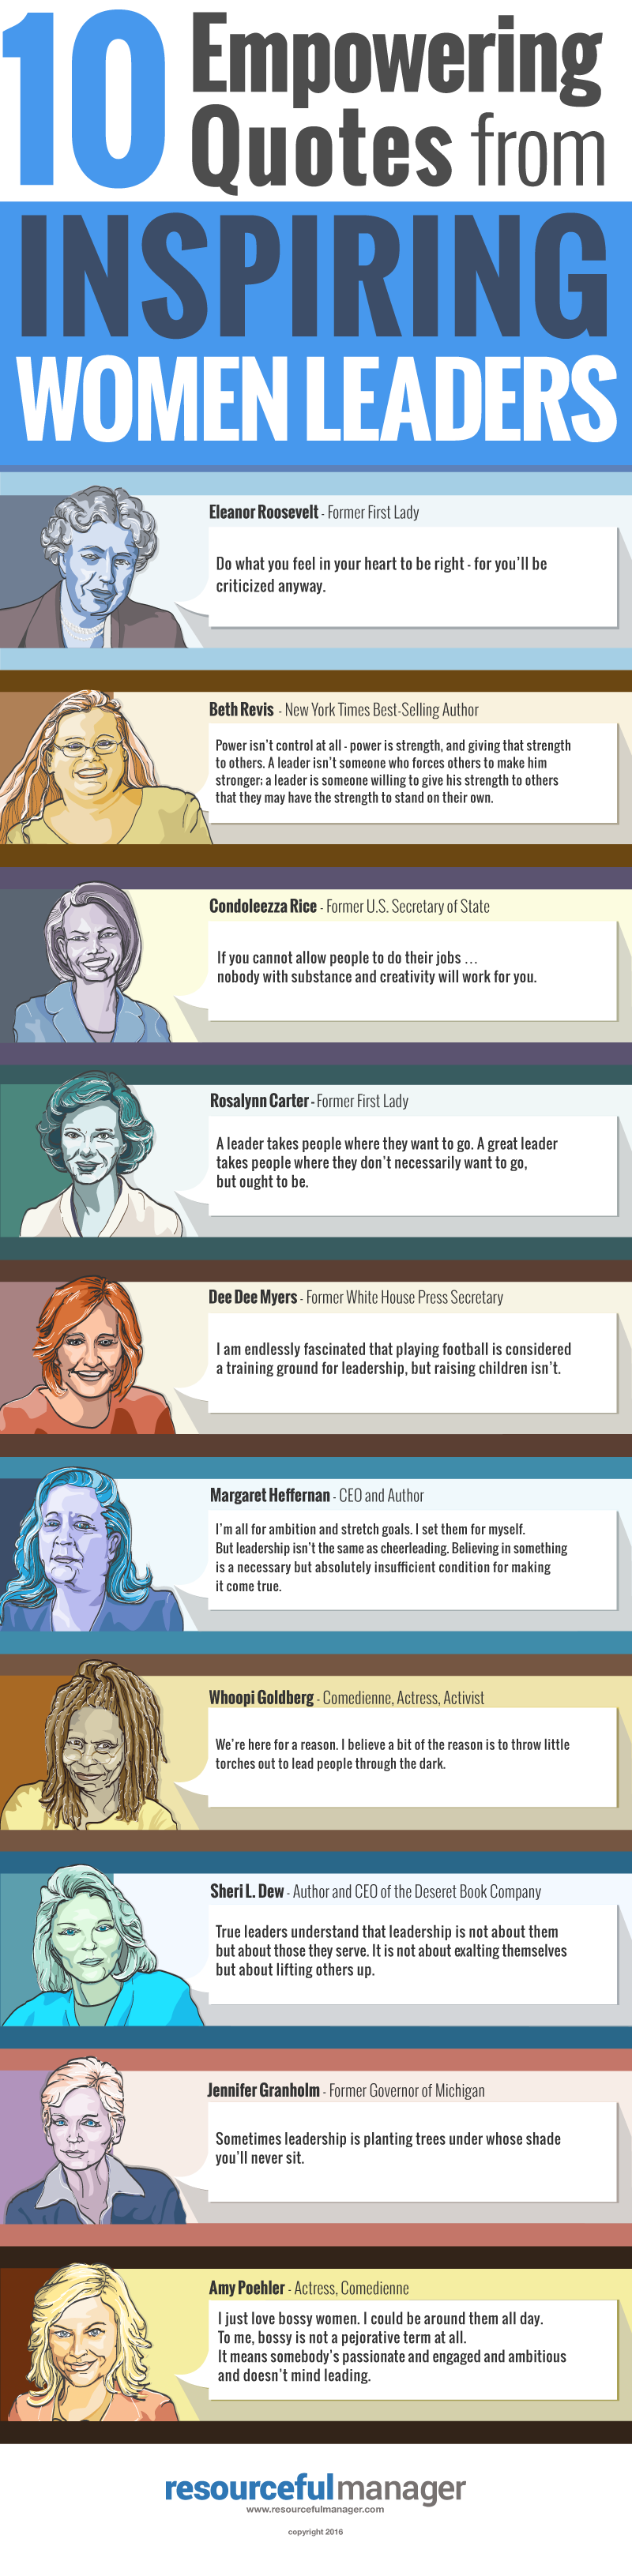 10 Empowering Quotes from Inspiring Women Leaders